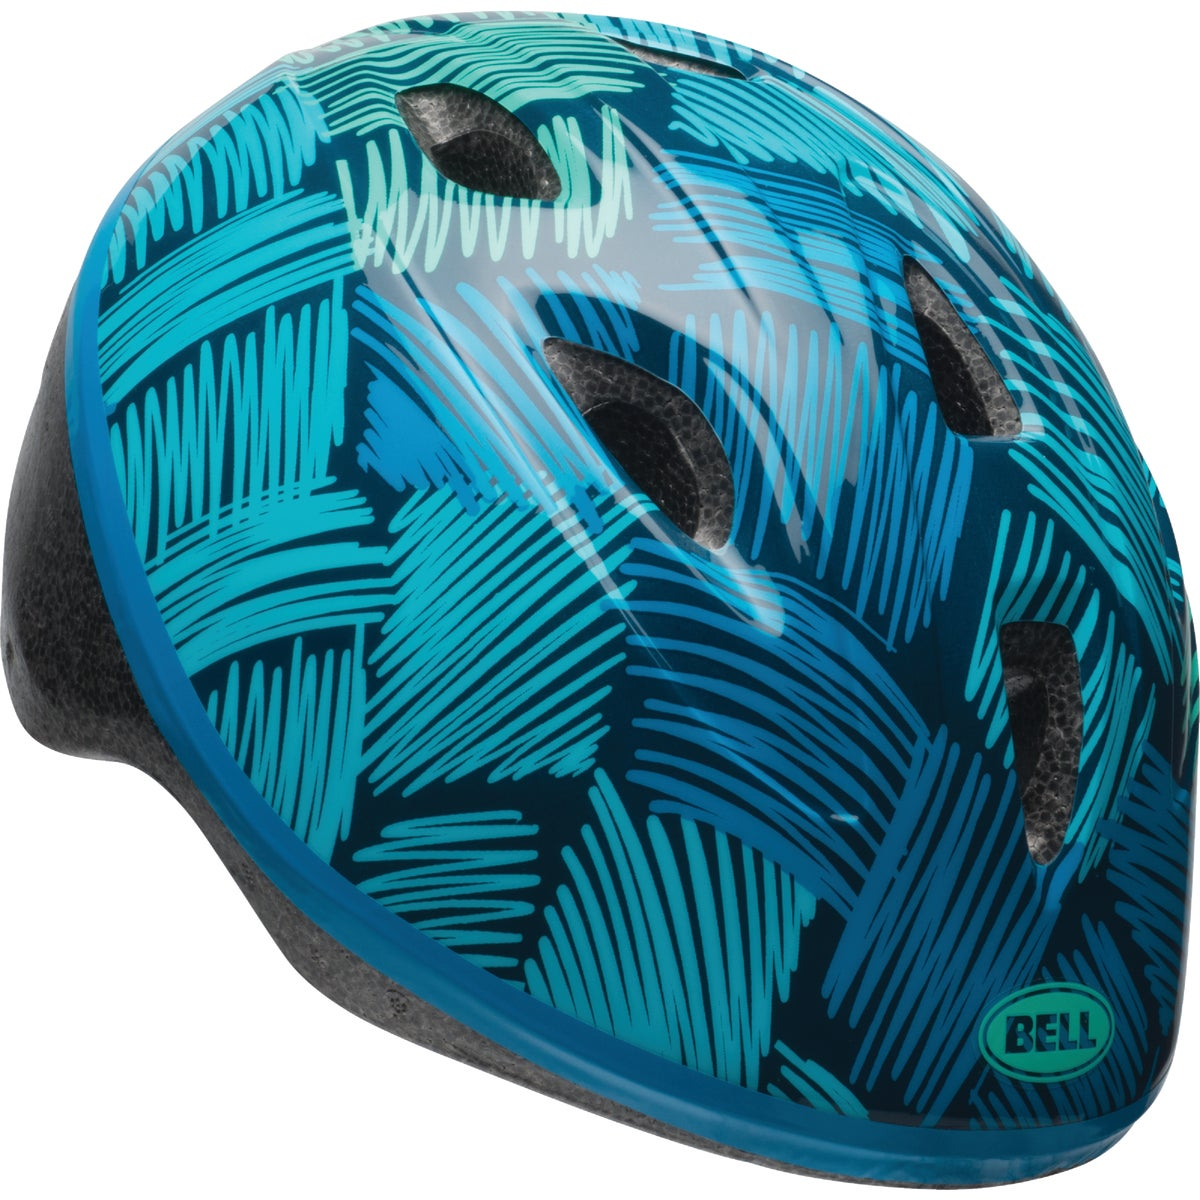 BOY TODDLER HELMET - 7020741 by Bell Sports